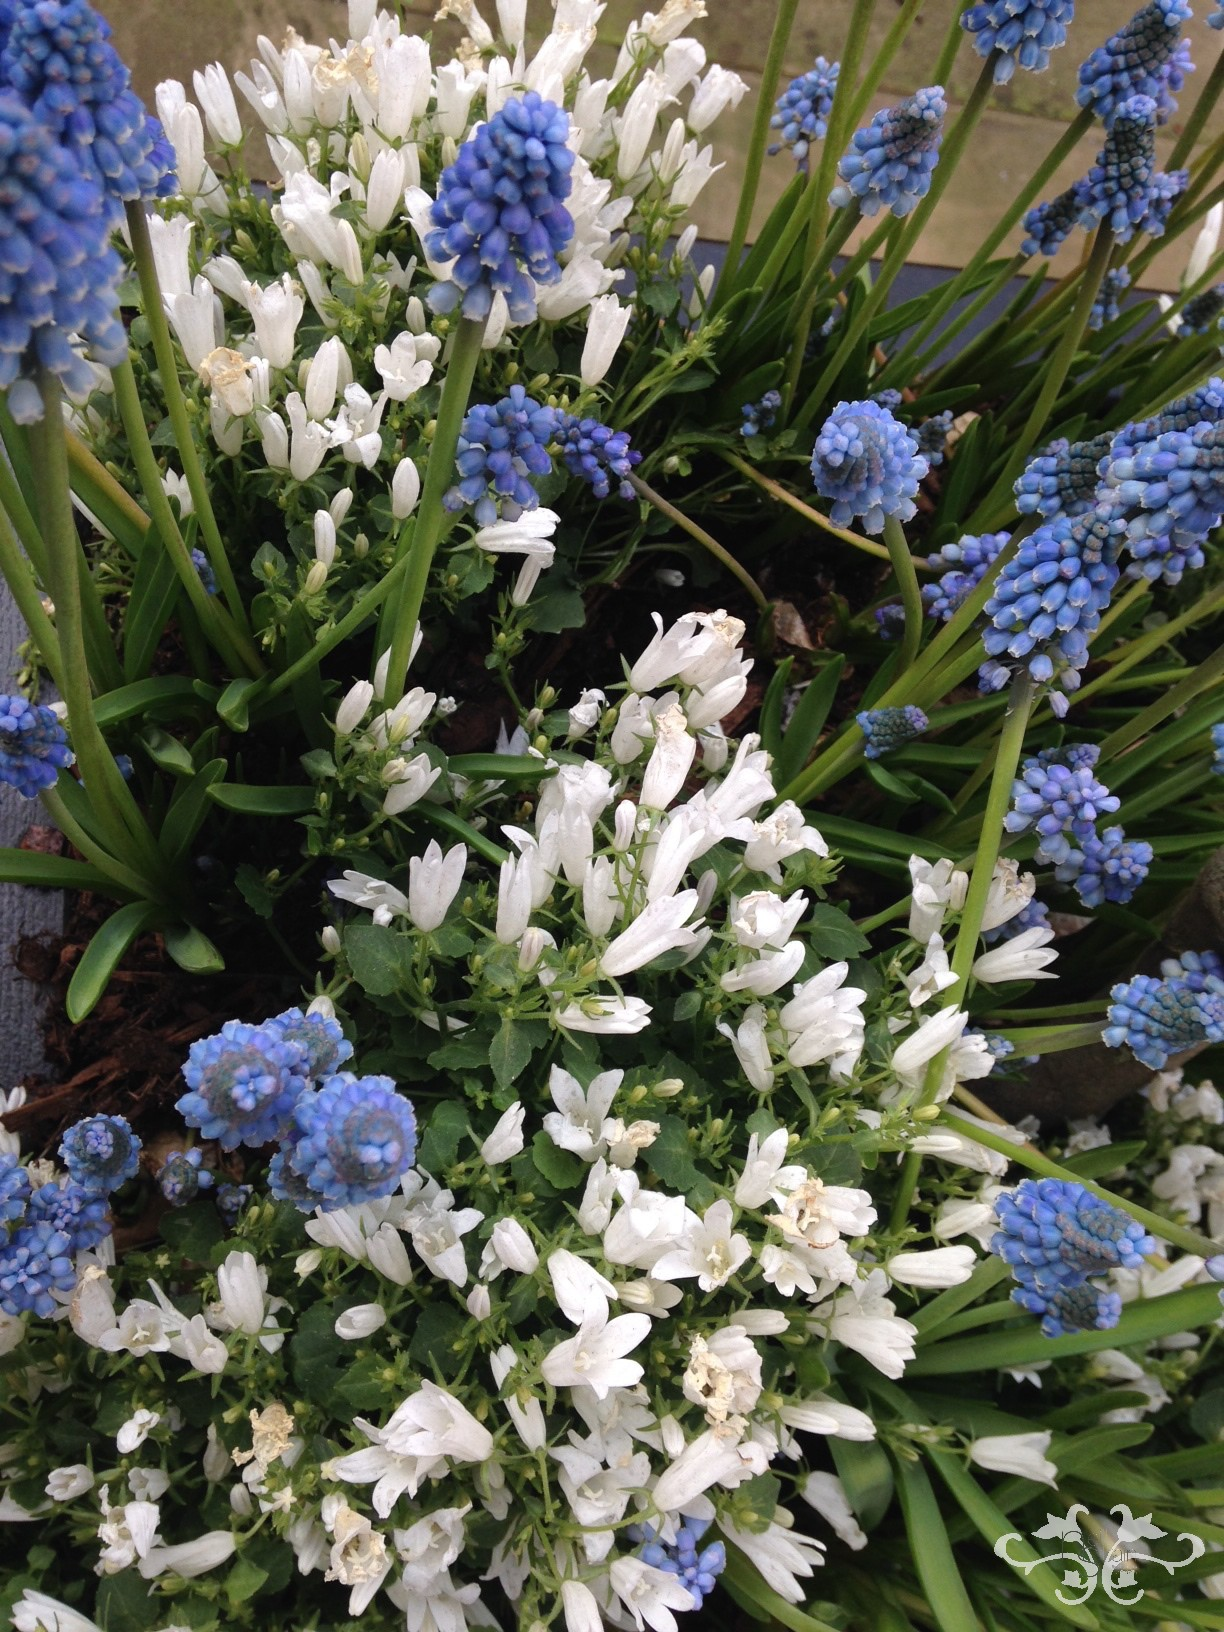 Muscari and Campanule make gorgeous spring planters or window boxes.